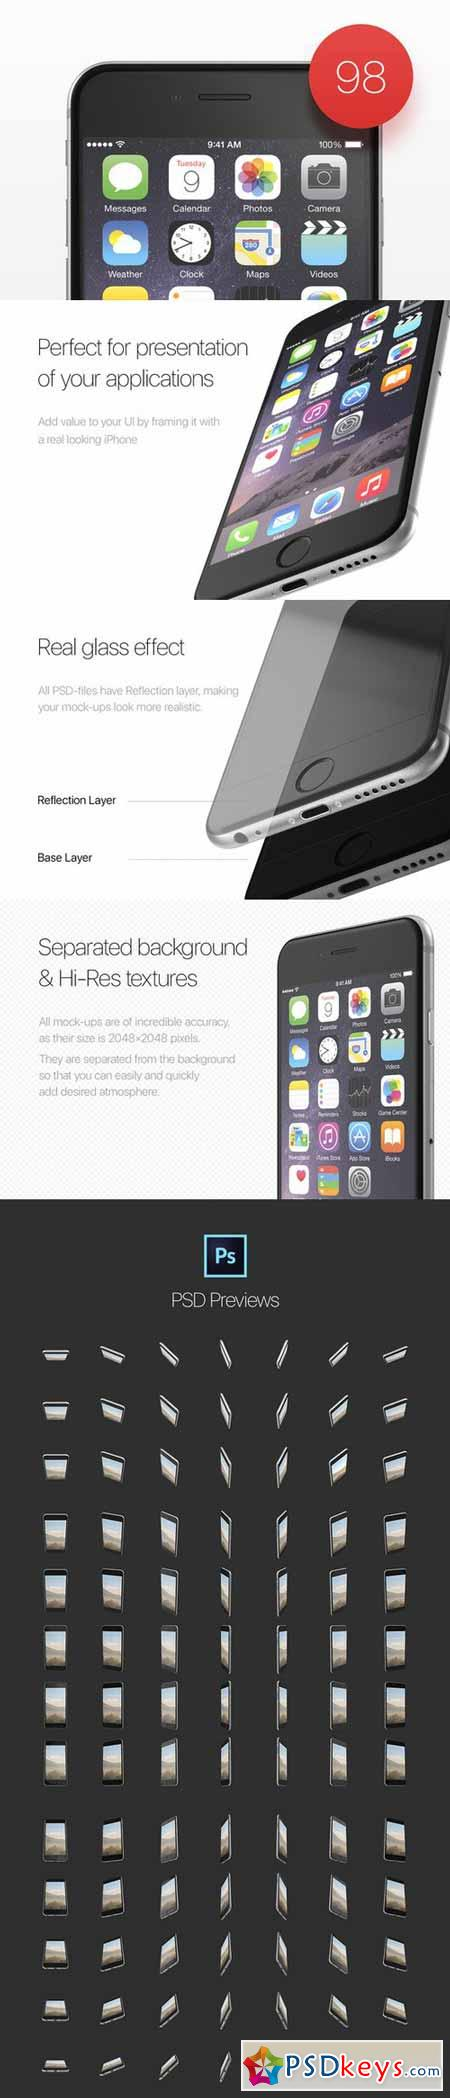 98 perfect iPhone 6 mockups 434448